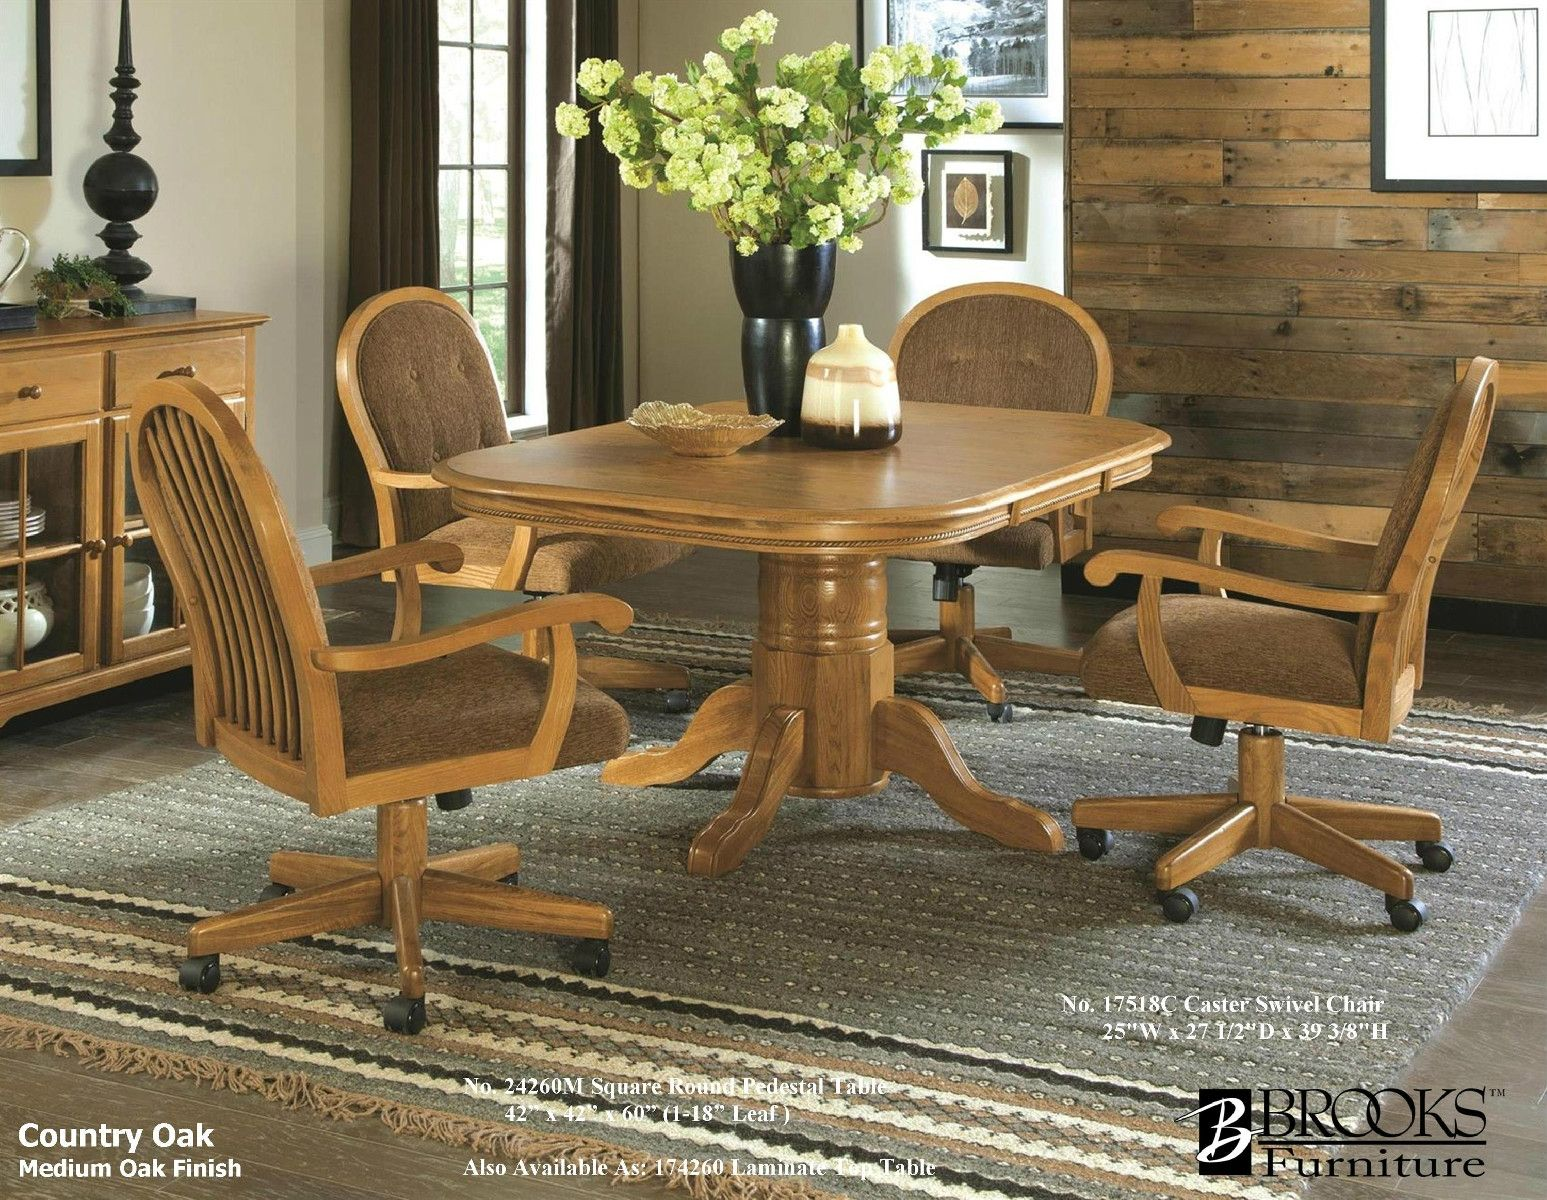 Caster Chairs 179900 Boyd Furniture